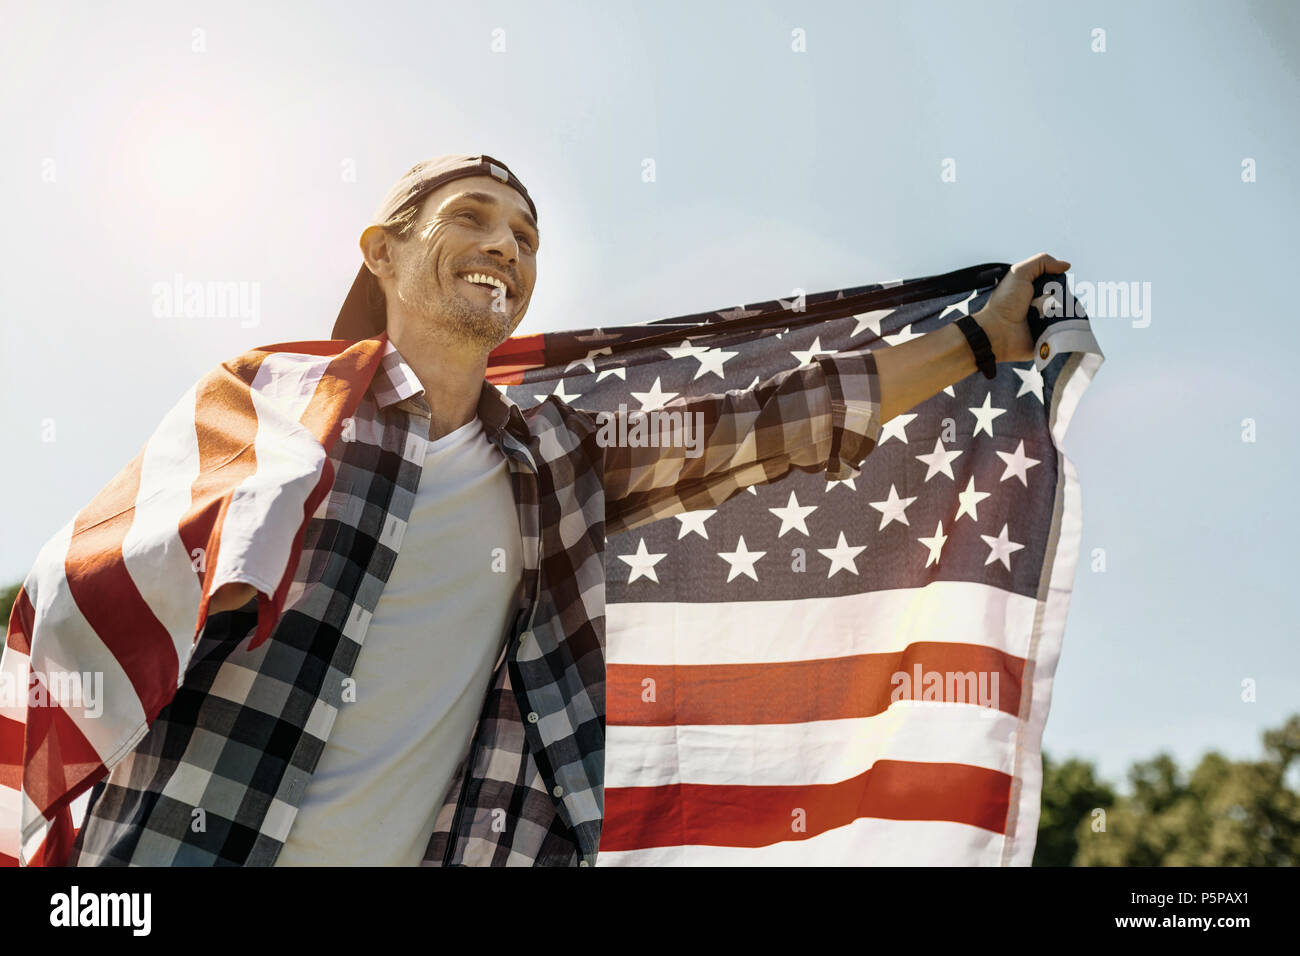 Cheerful man holding a flag and smiling - Stock Image